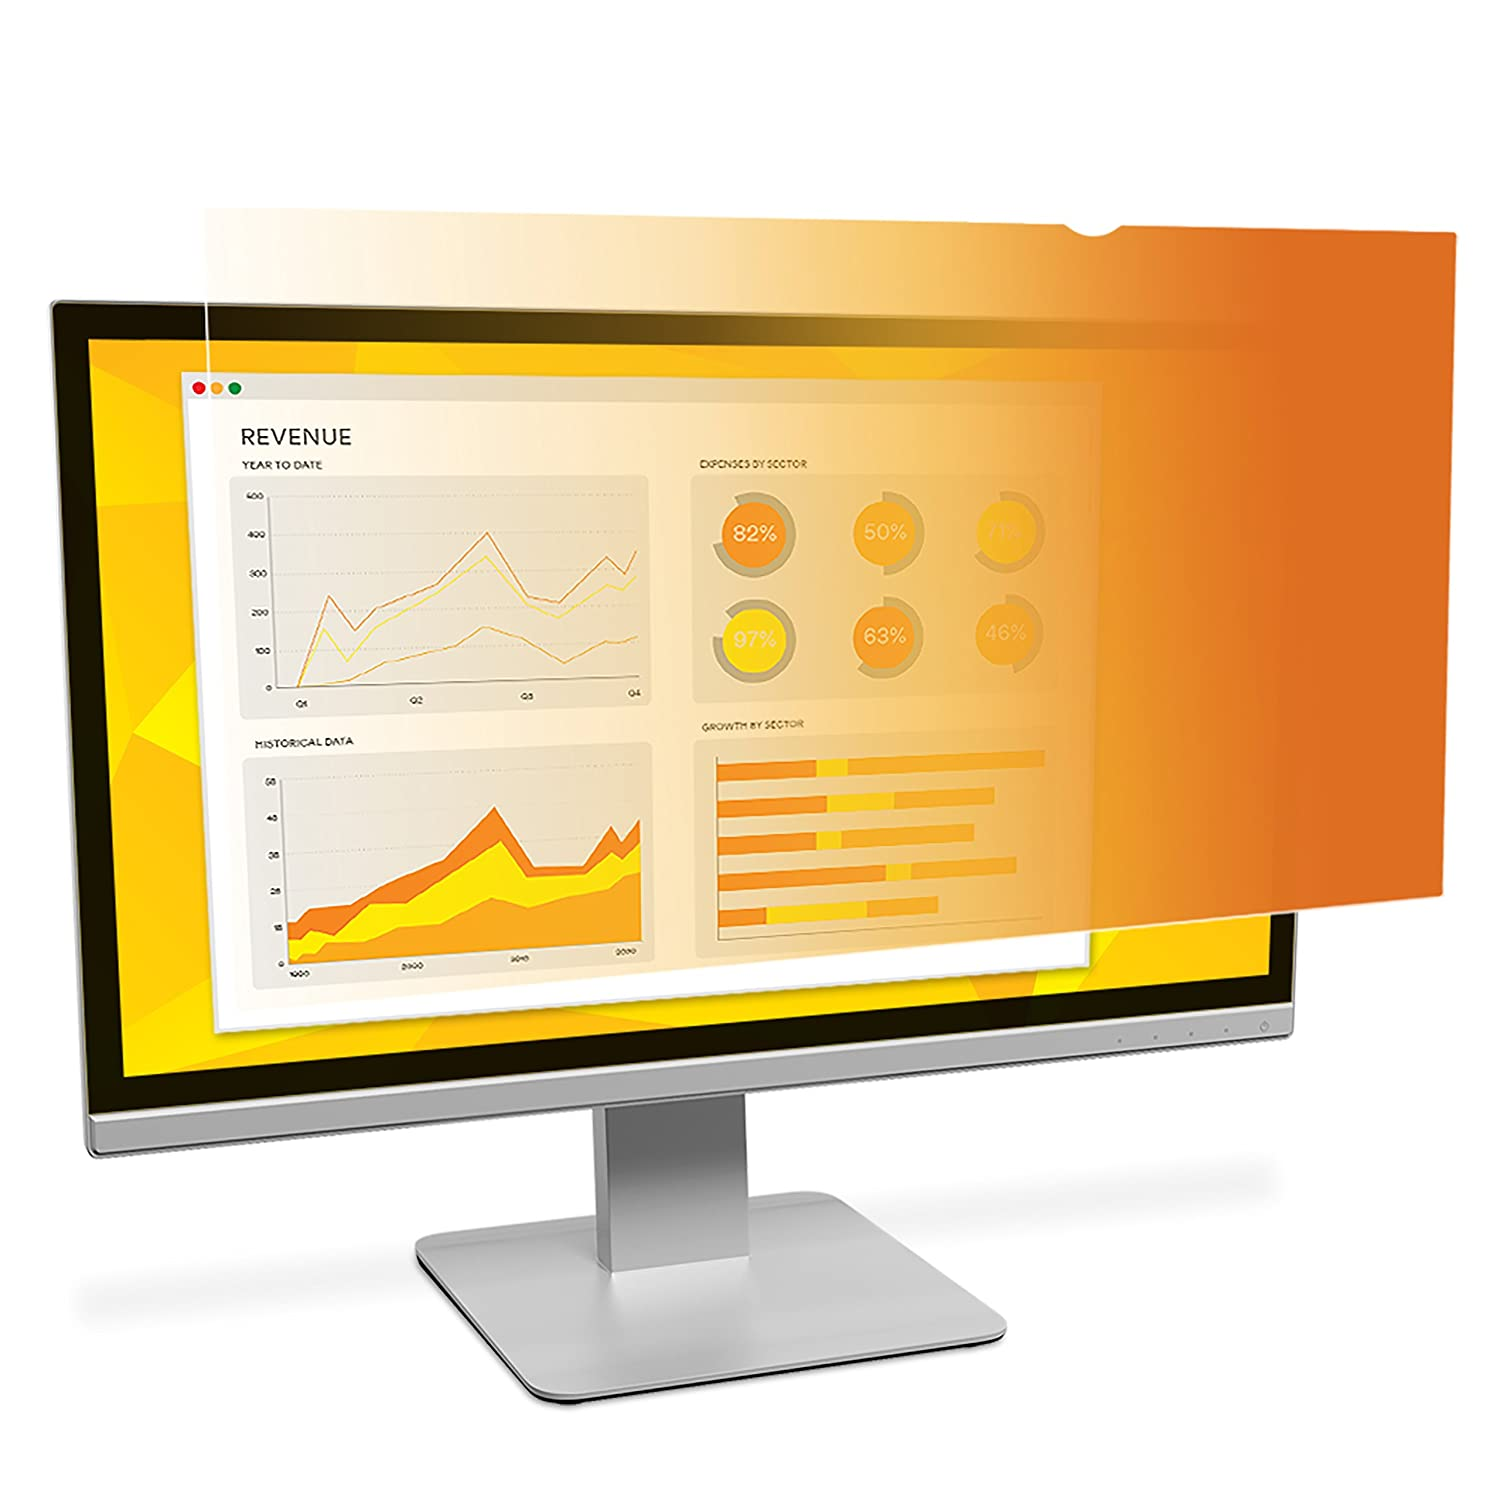 3M Gold Privacy Filter for 27.0 Widescreen Monitor 16: 10 Aspect Ratio